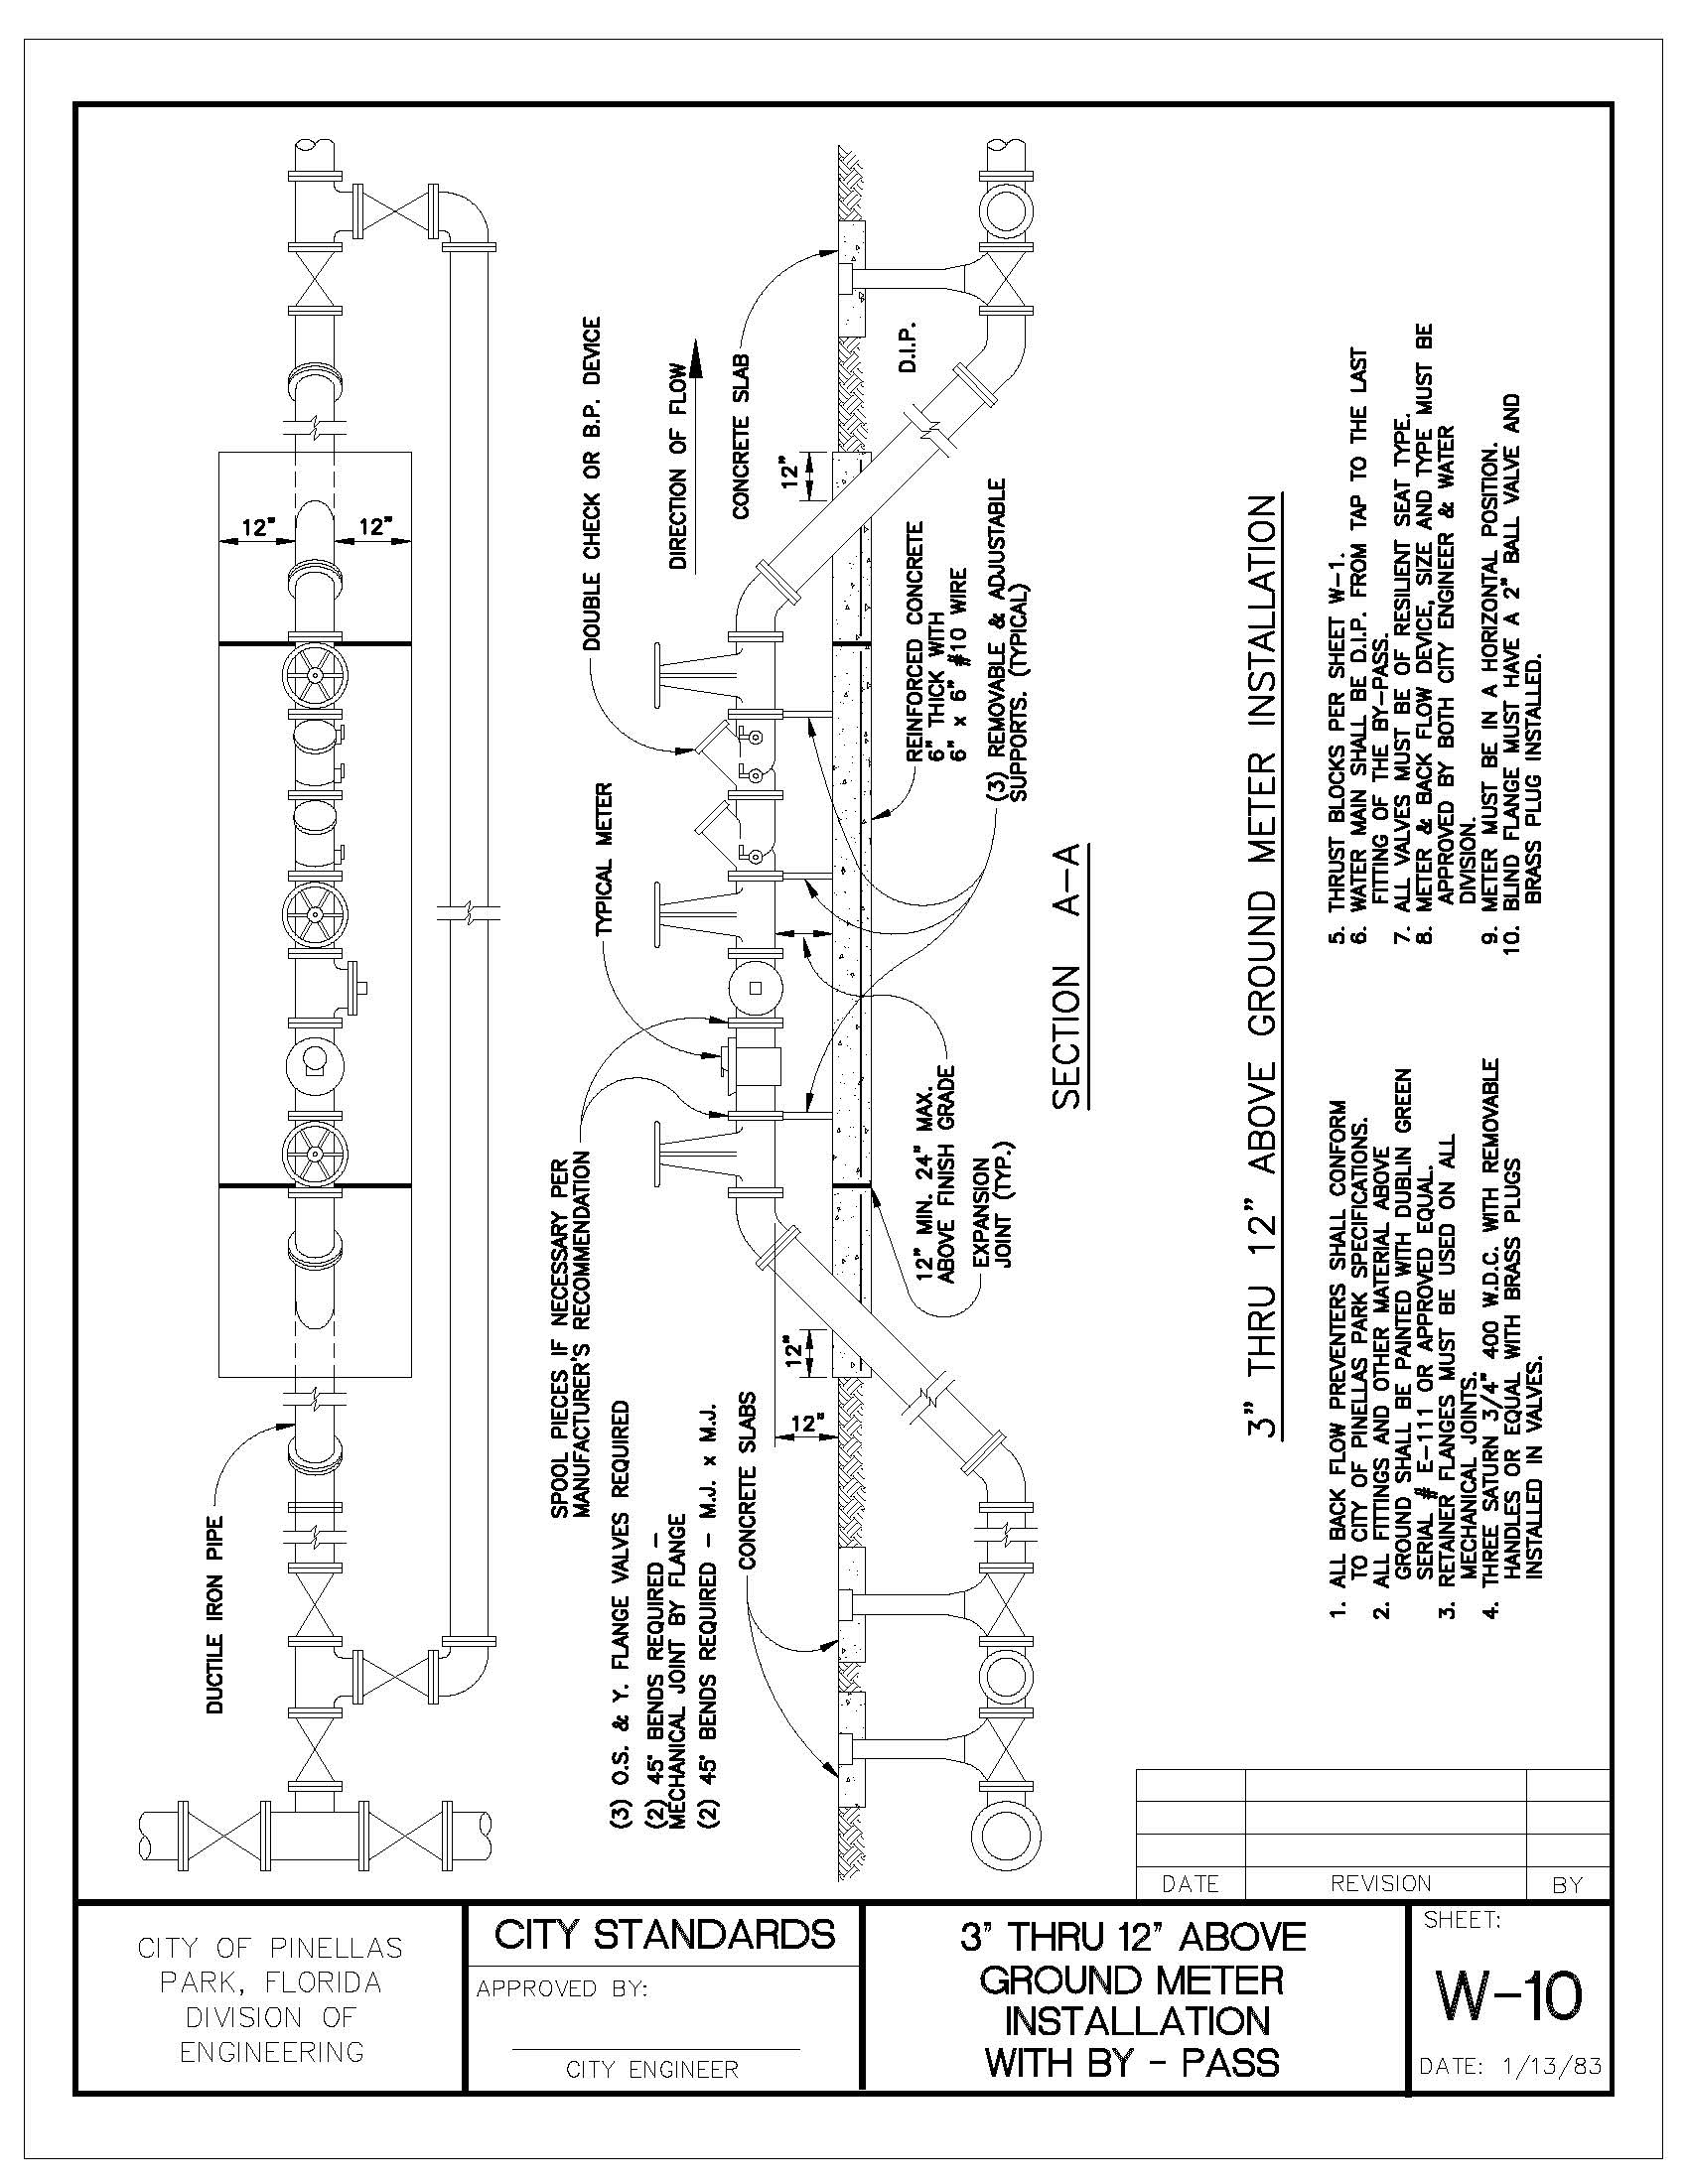 "Engineering Manual v5_201908121127291138_Page_084 3"" THRU 12"" ABOVE GROUND METER INSTALLATION"